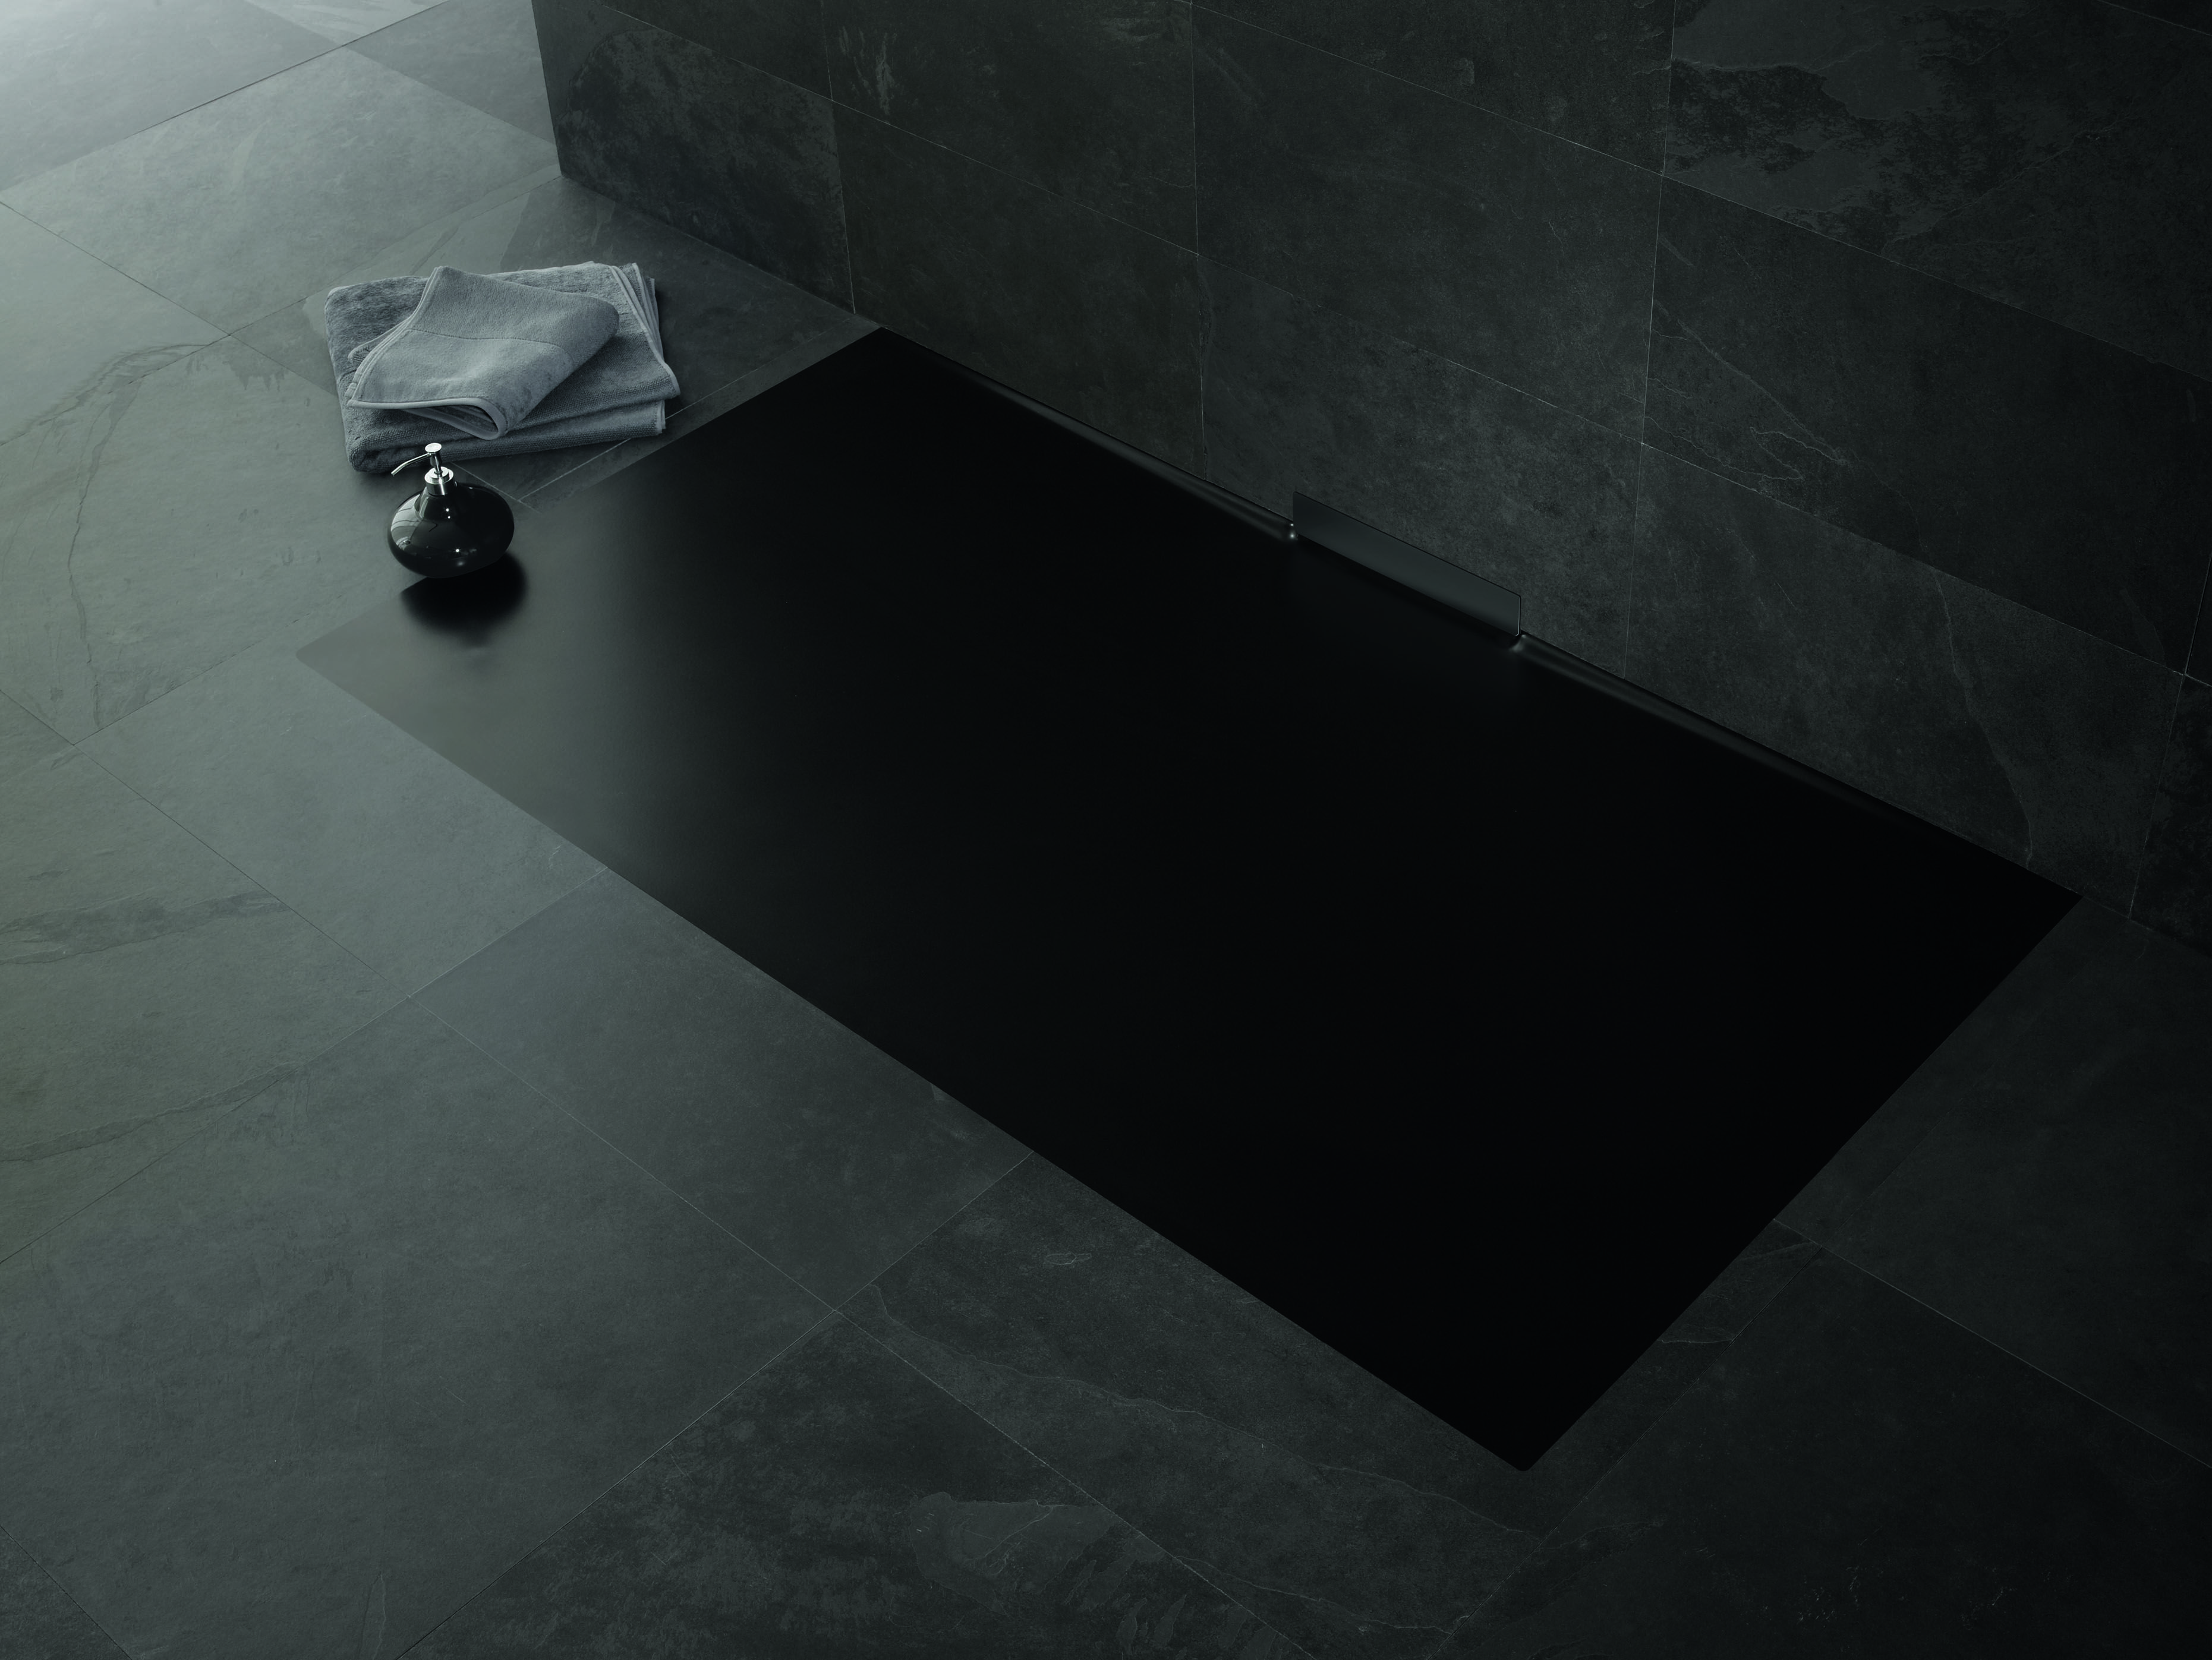 With 13 Different Dimensions The New Shower Surface Xetis Blends Easily With Any Floor The Hidden Wall Outlet Sets